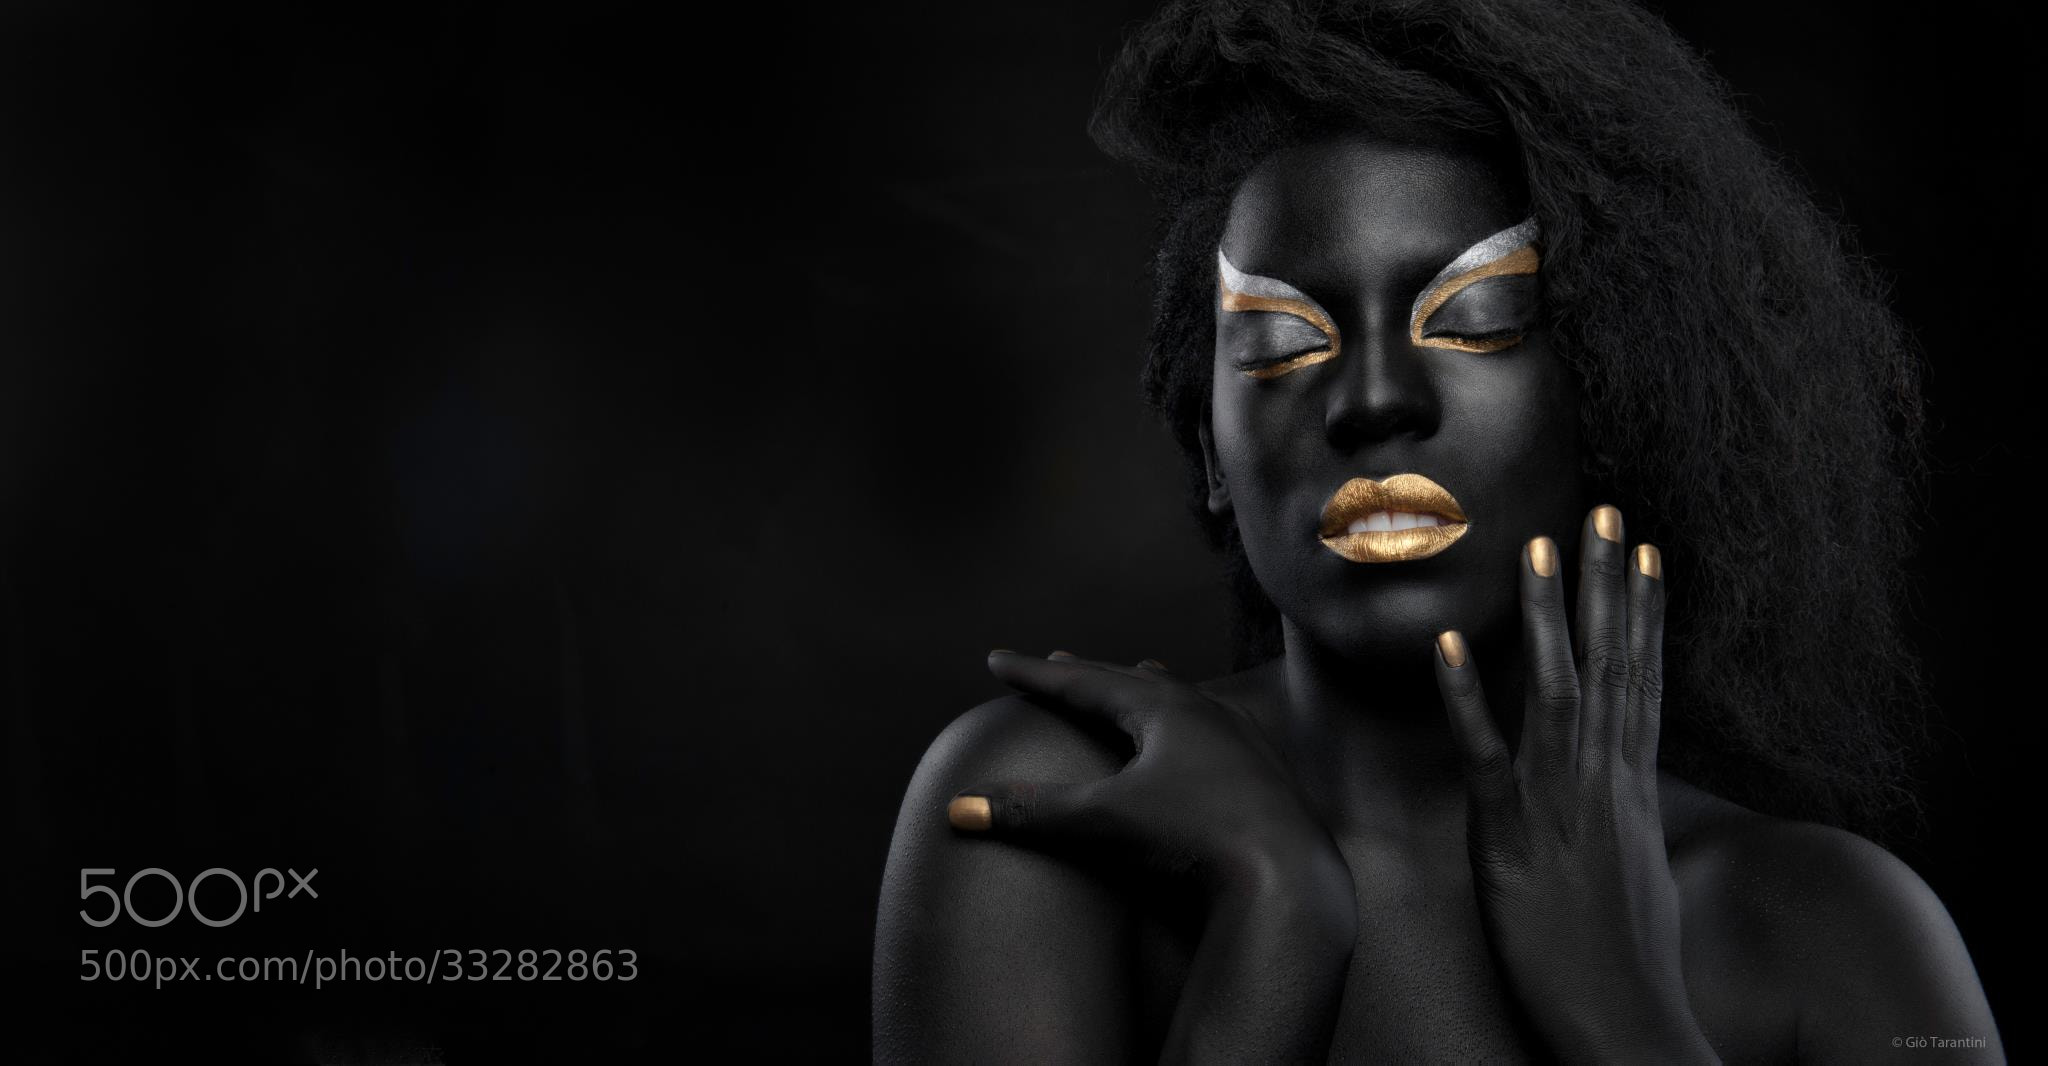 Photograph BlackMagicWoman by Giò Tarantini on 500px